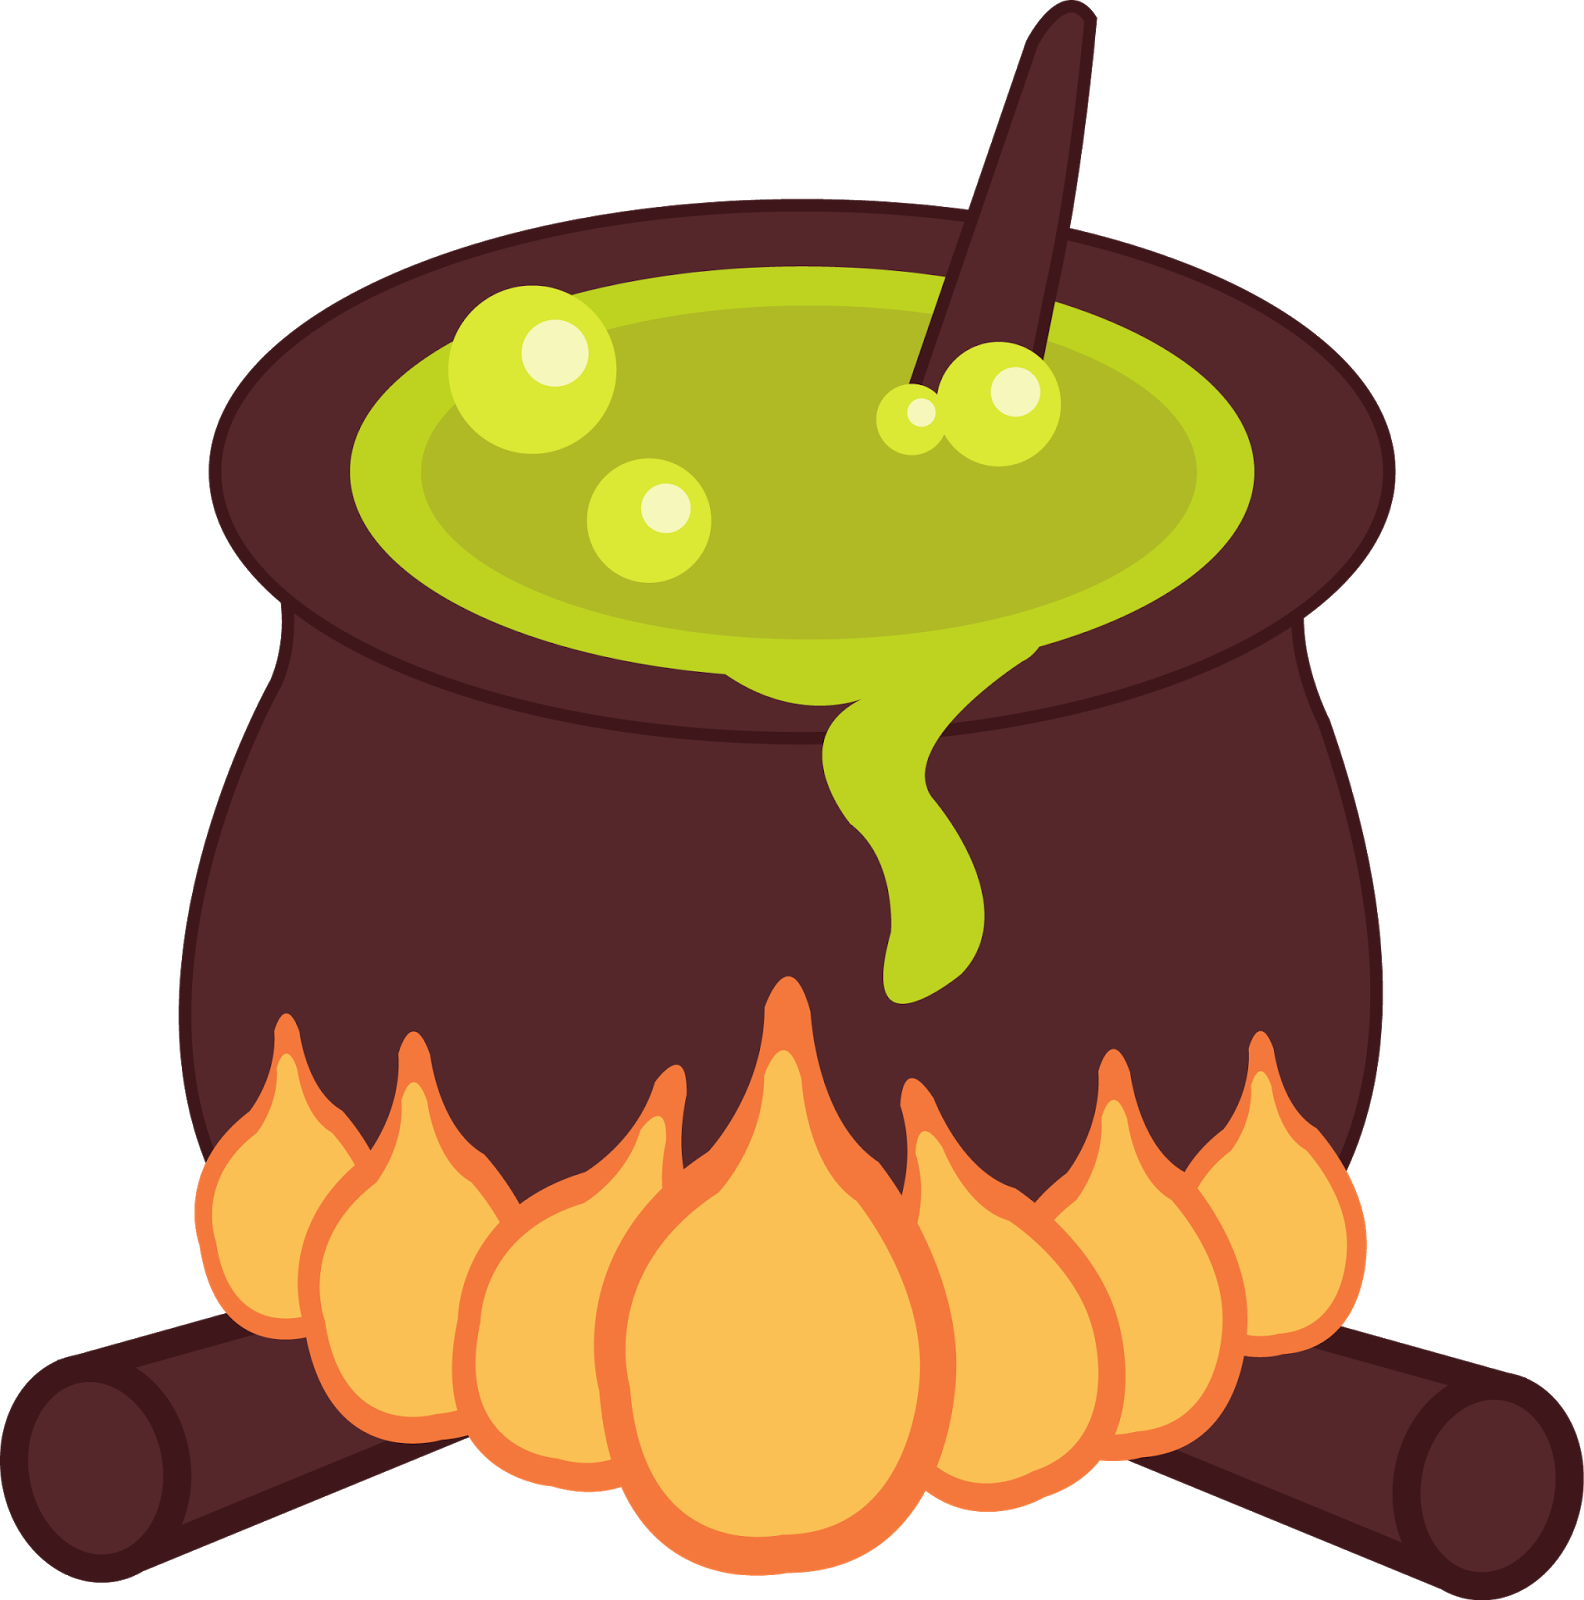 Halloween Cauldrons Clipart. | Oh My Fiesta! in english